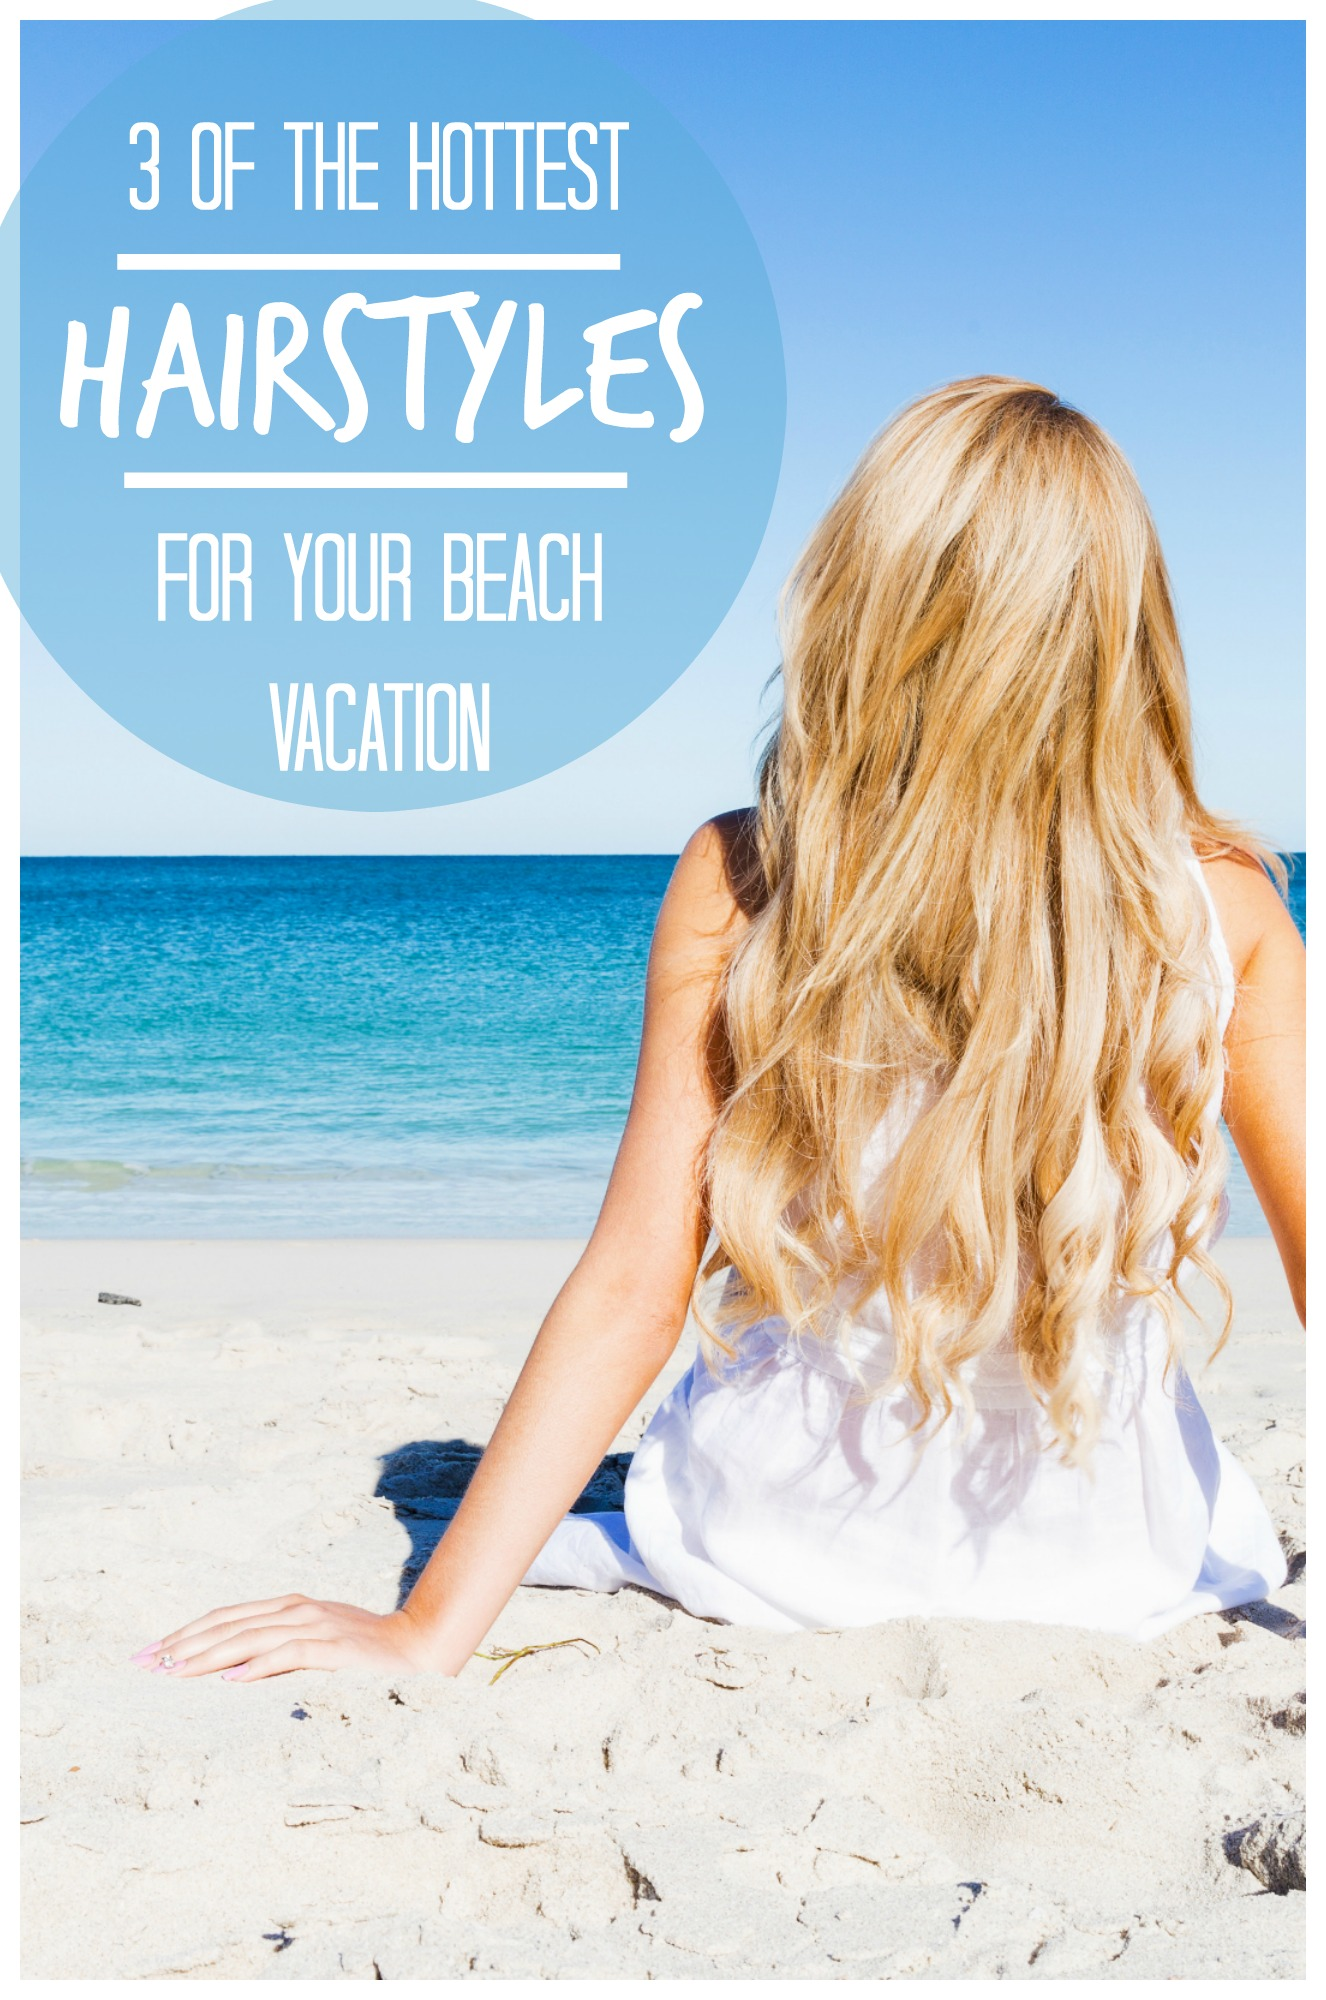 3 of the Hottest Hairstyles for Your Beach Vacation